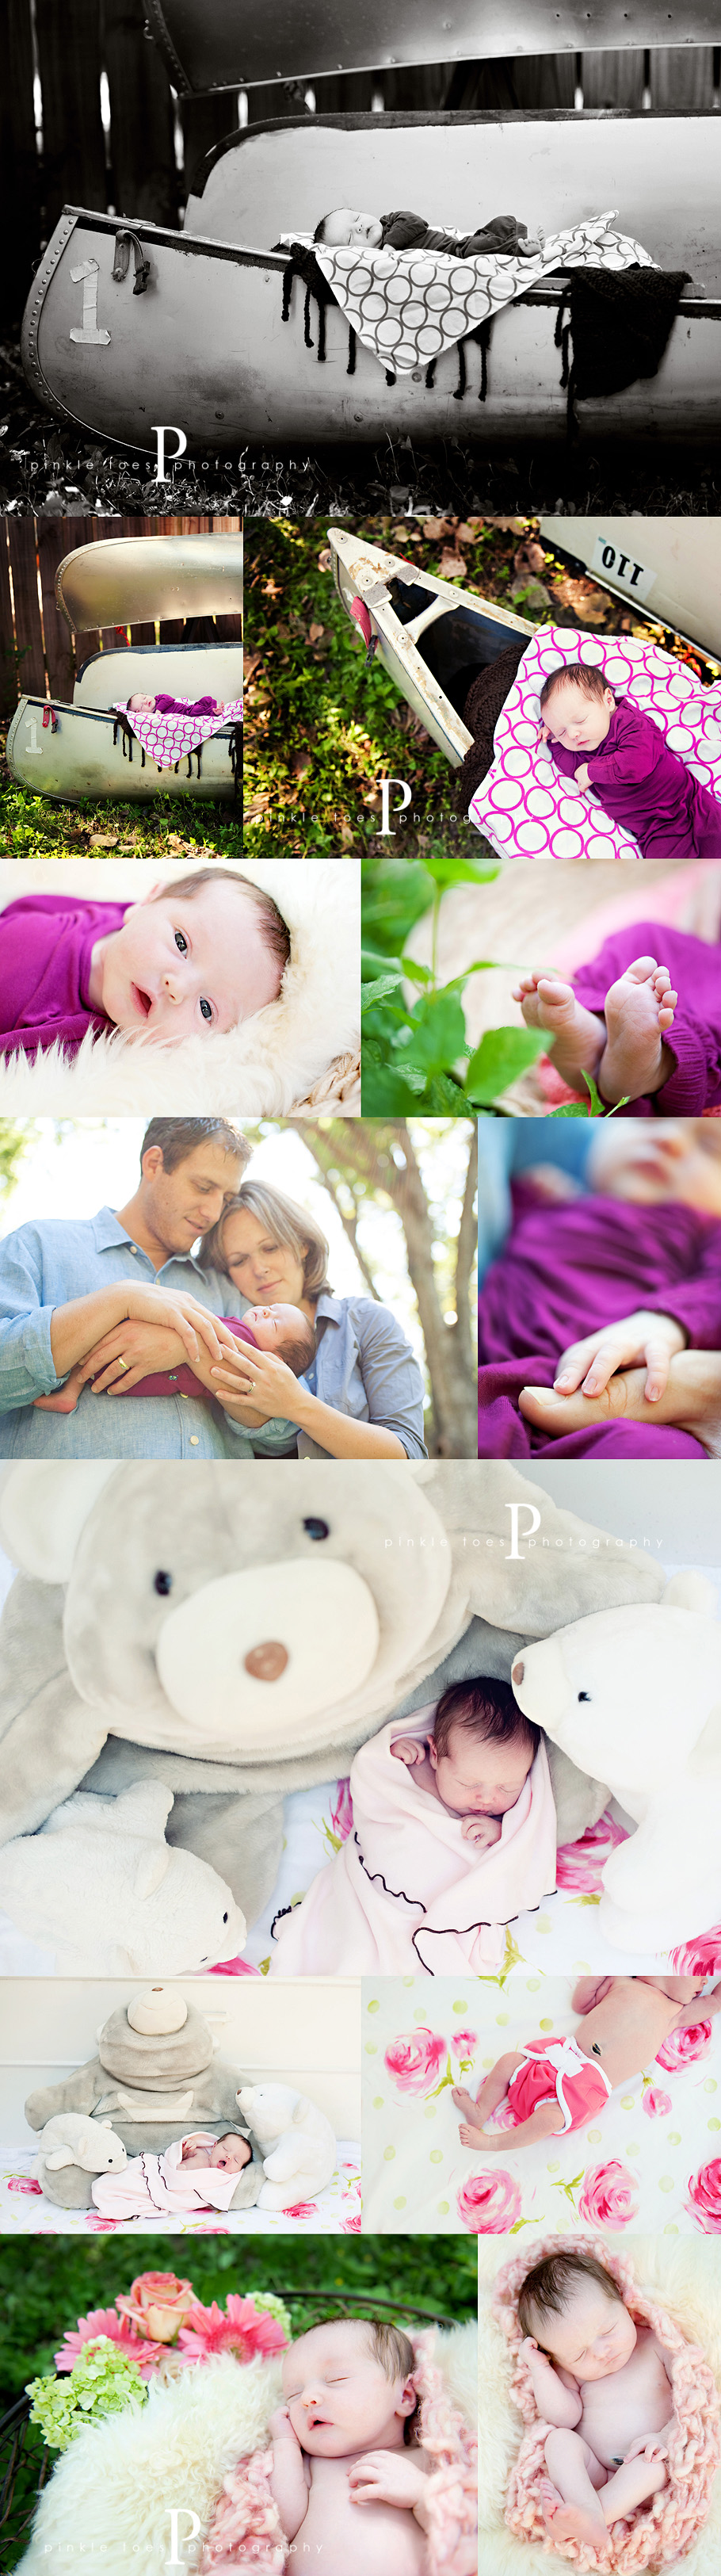 kt_austin_newborn_photographer.jpg